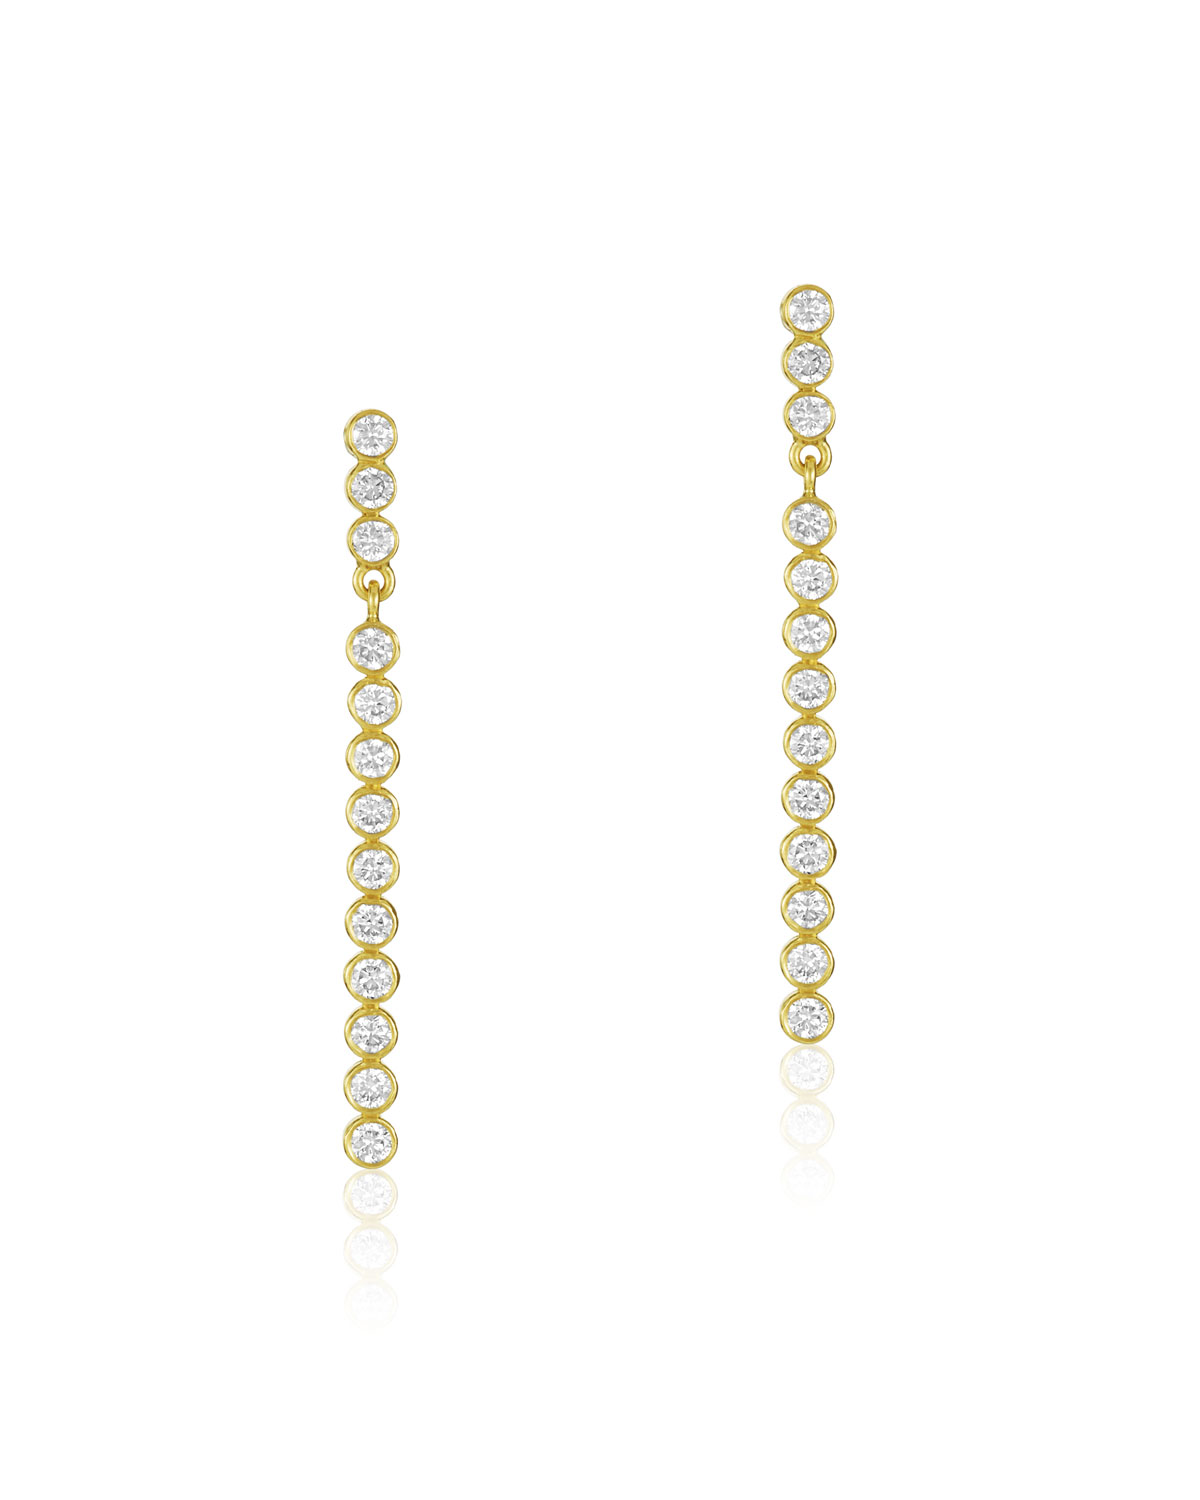 LEGEND AMRAPALI Tarakini Linear Diamond Earrings